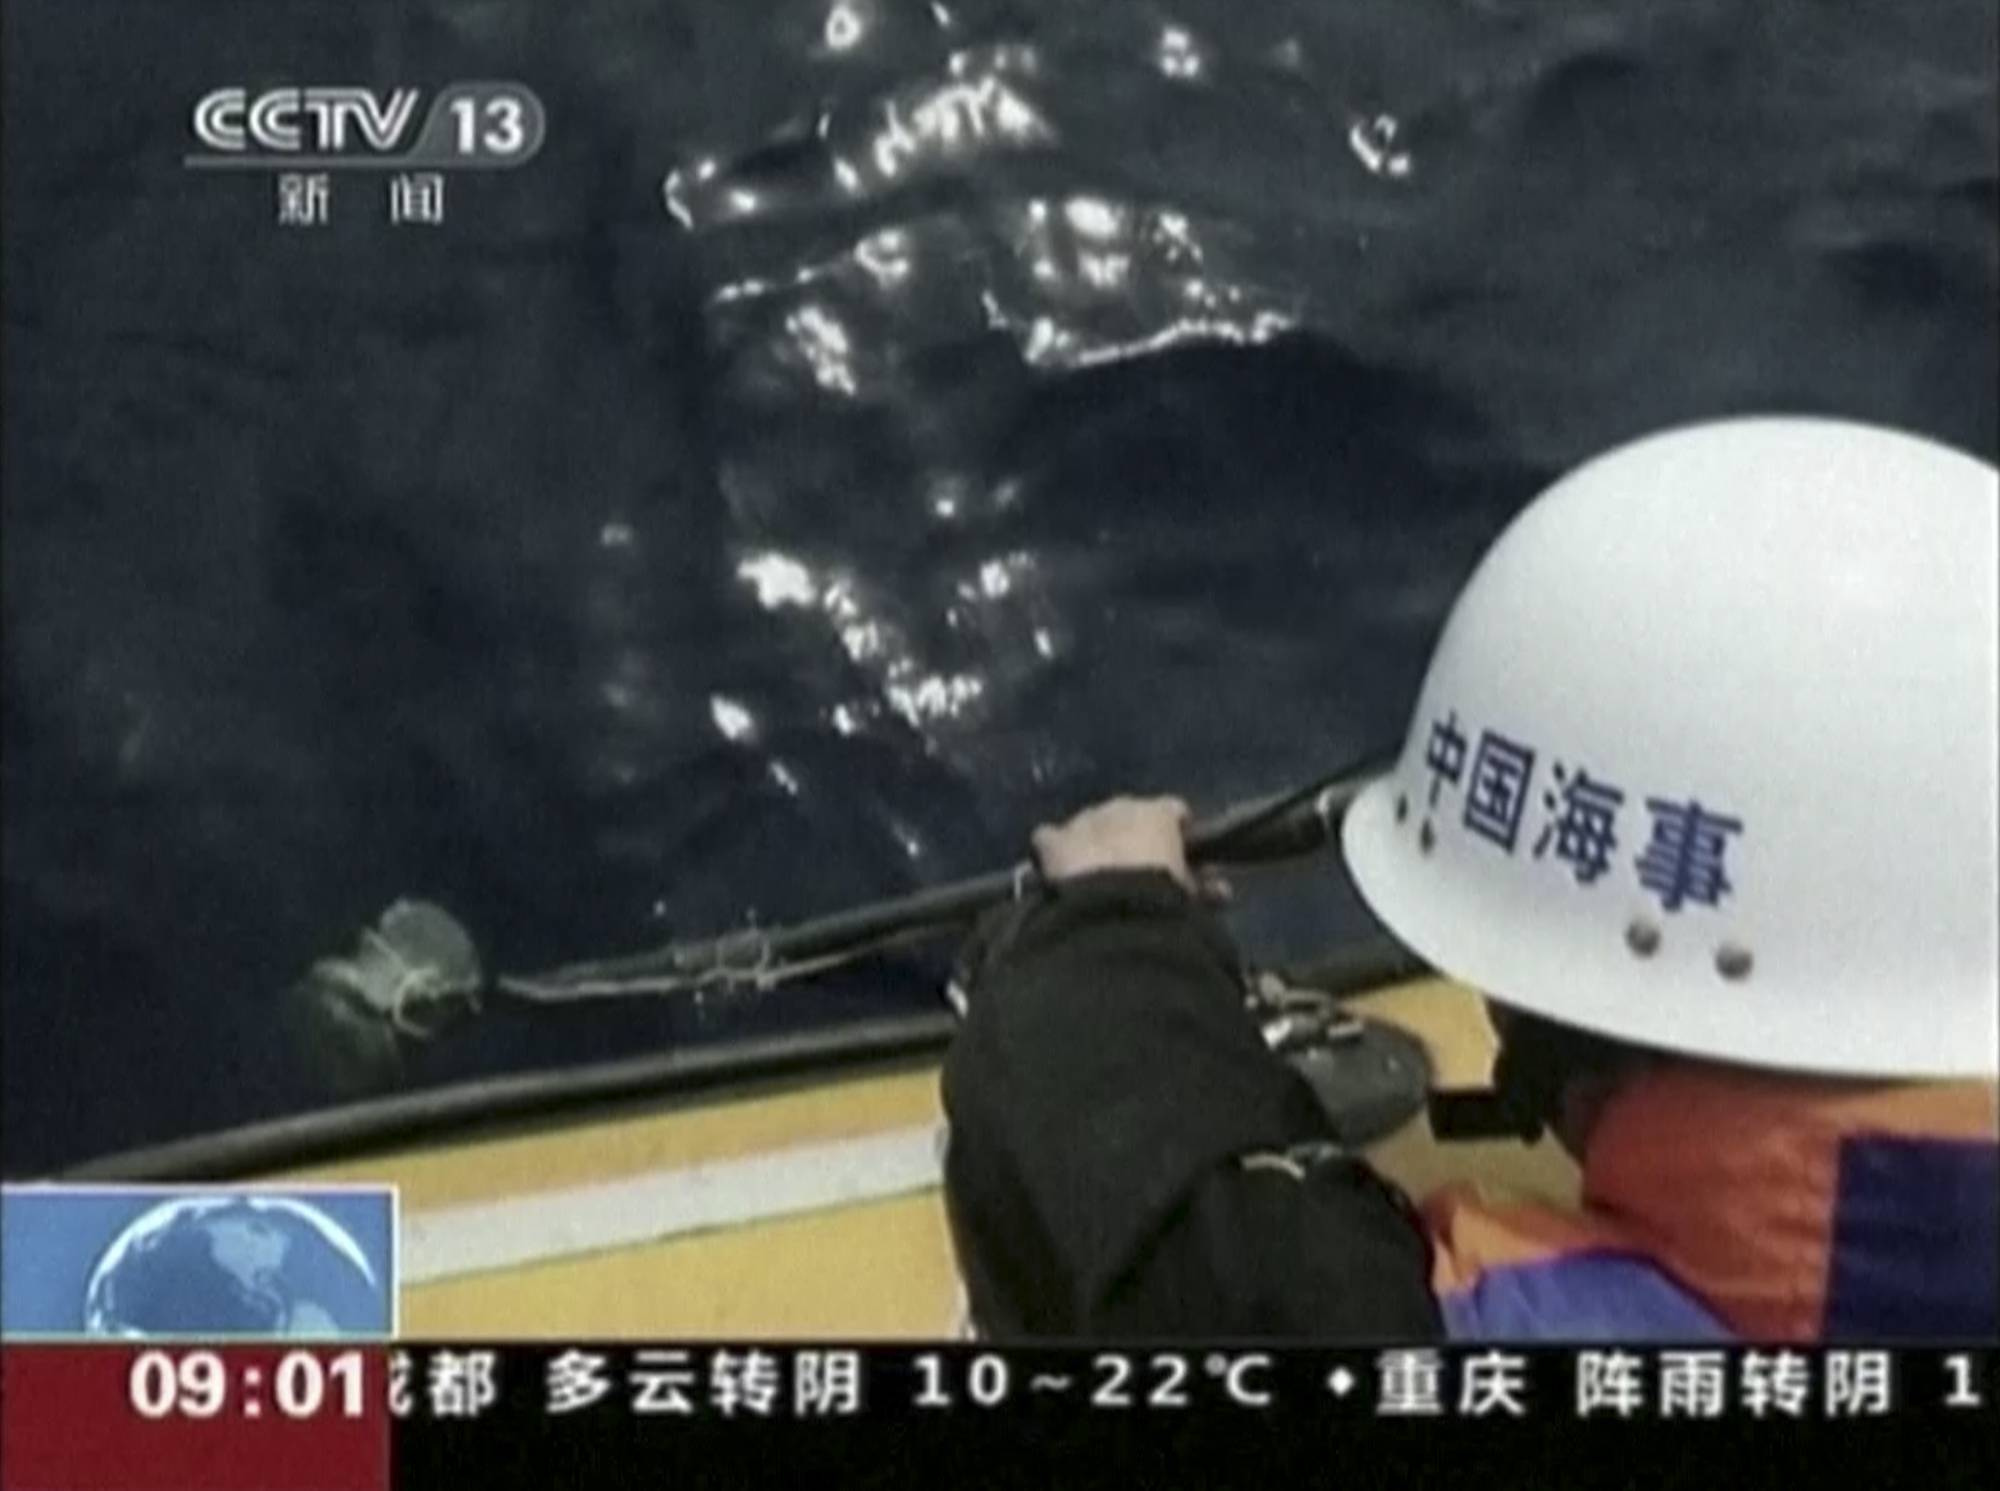 A member of a Chinese search team uses an instrument to detect electronic pulses while searching for the missing Malaysia Airlines Flight 370 on board a patrol vessel in the search area of the southern Indian Ocean Saturday.